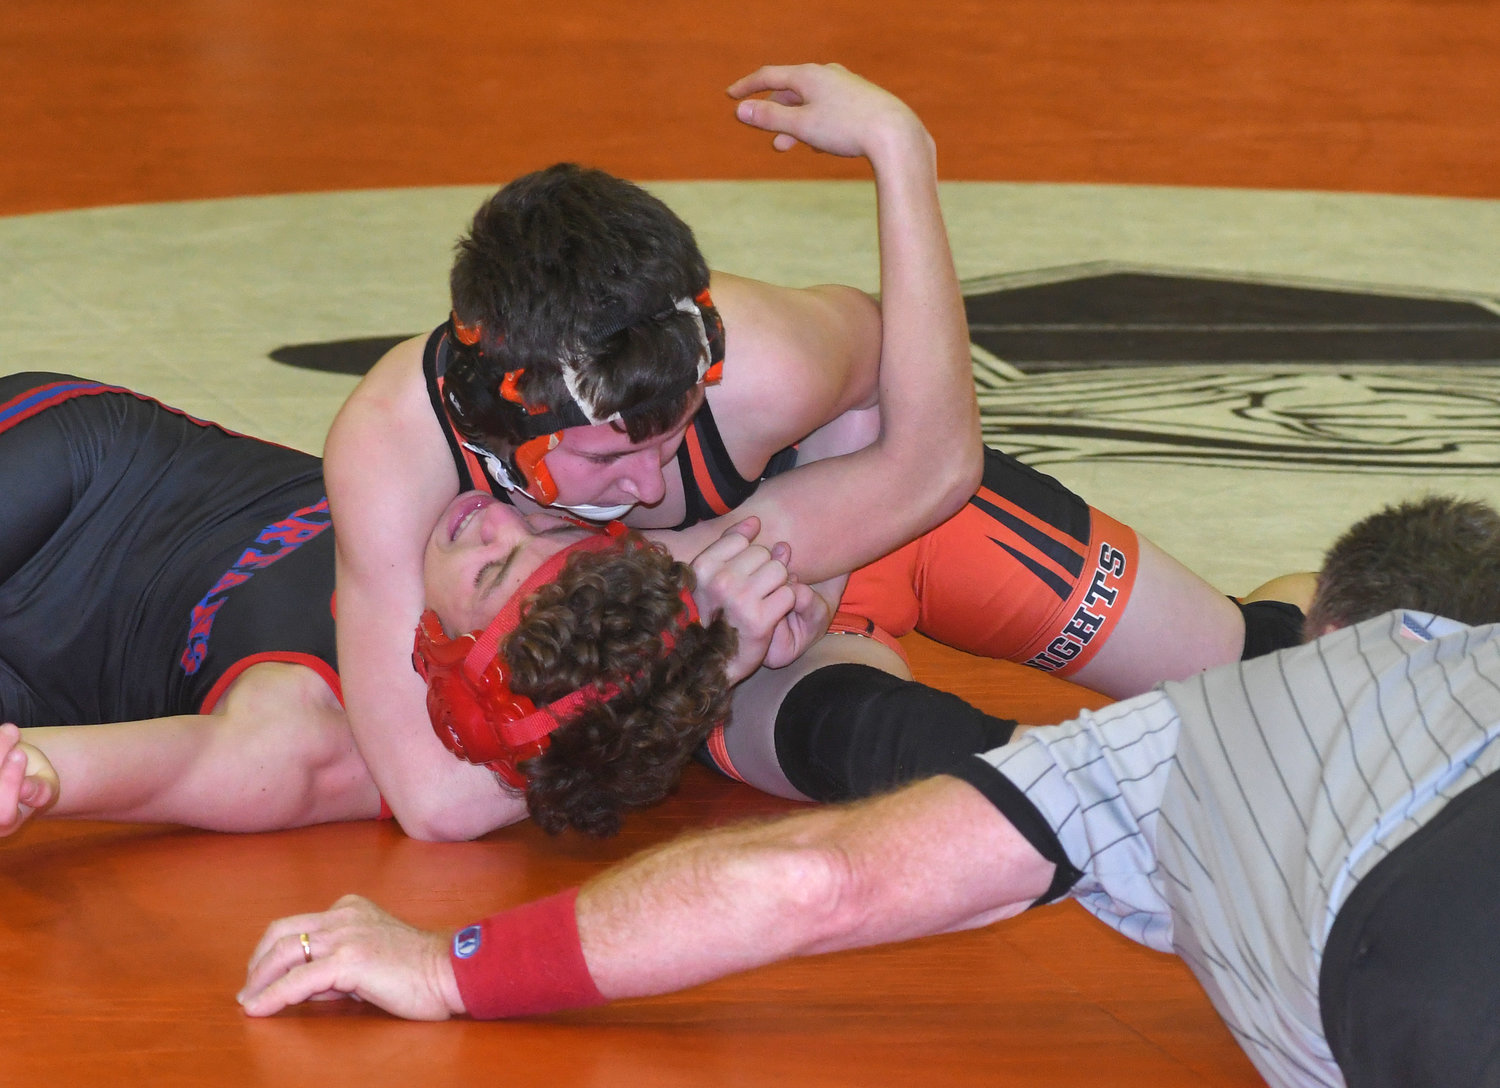 DOWN FOR THE COUNT — Rome Free Academy's Ashton Thompson gets the pin of New Hartford's Osciano Swartz with referee Terry Kavanaugh officiating during Wednesday's match in Rome. Thompson won by pinfall as RFA went on to score a 58-30 win.